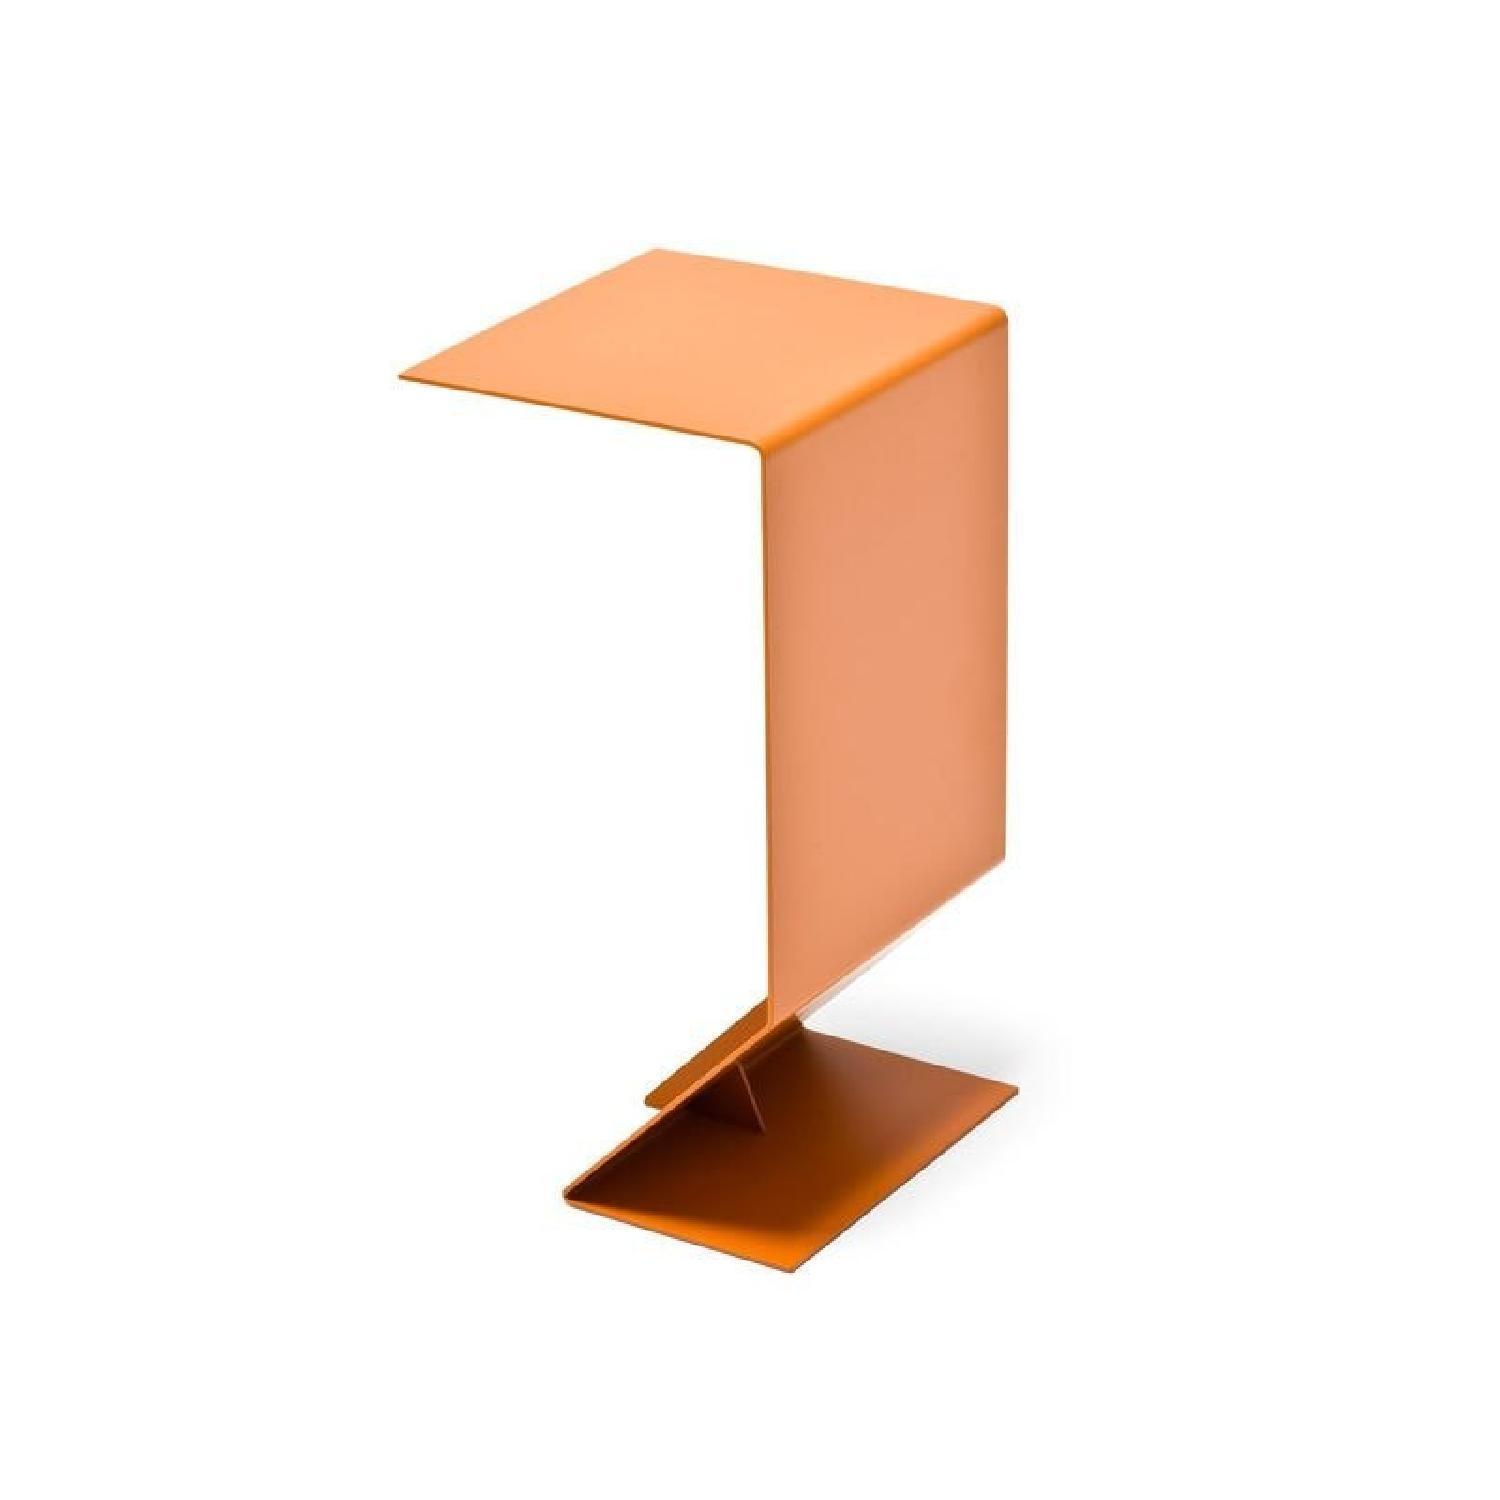 Moroso Contemporary Orange Steel Side Table